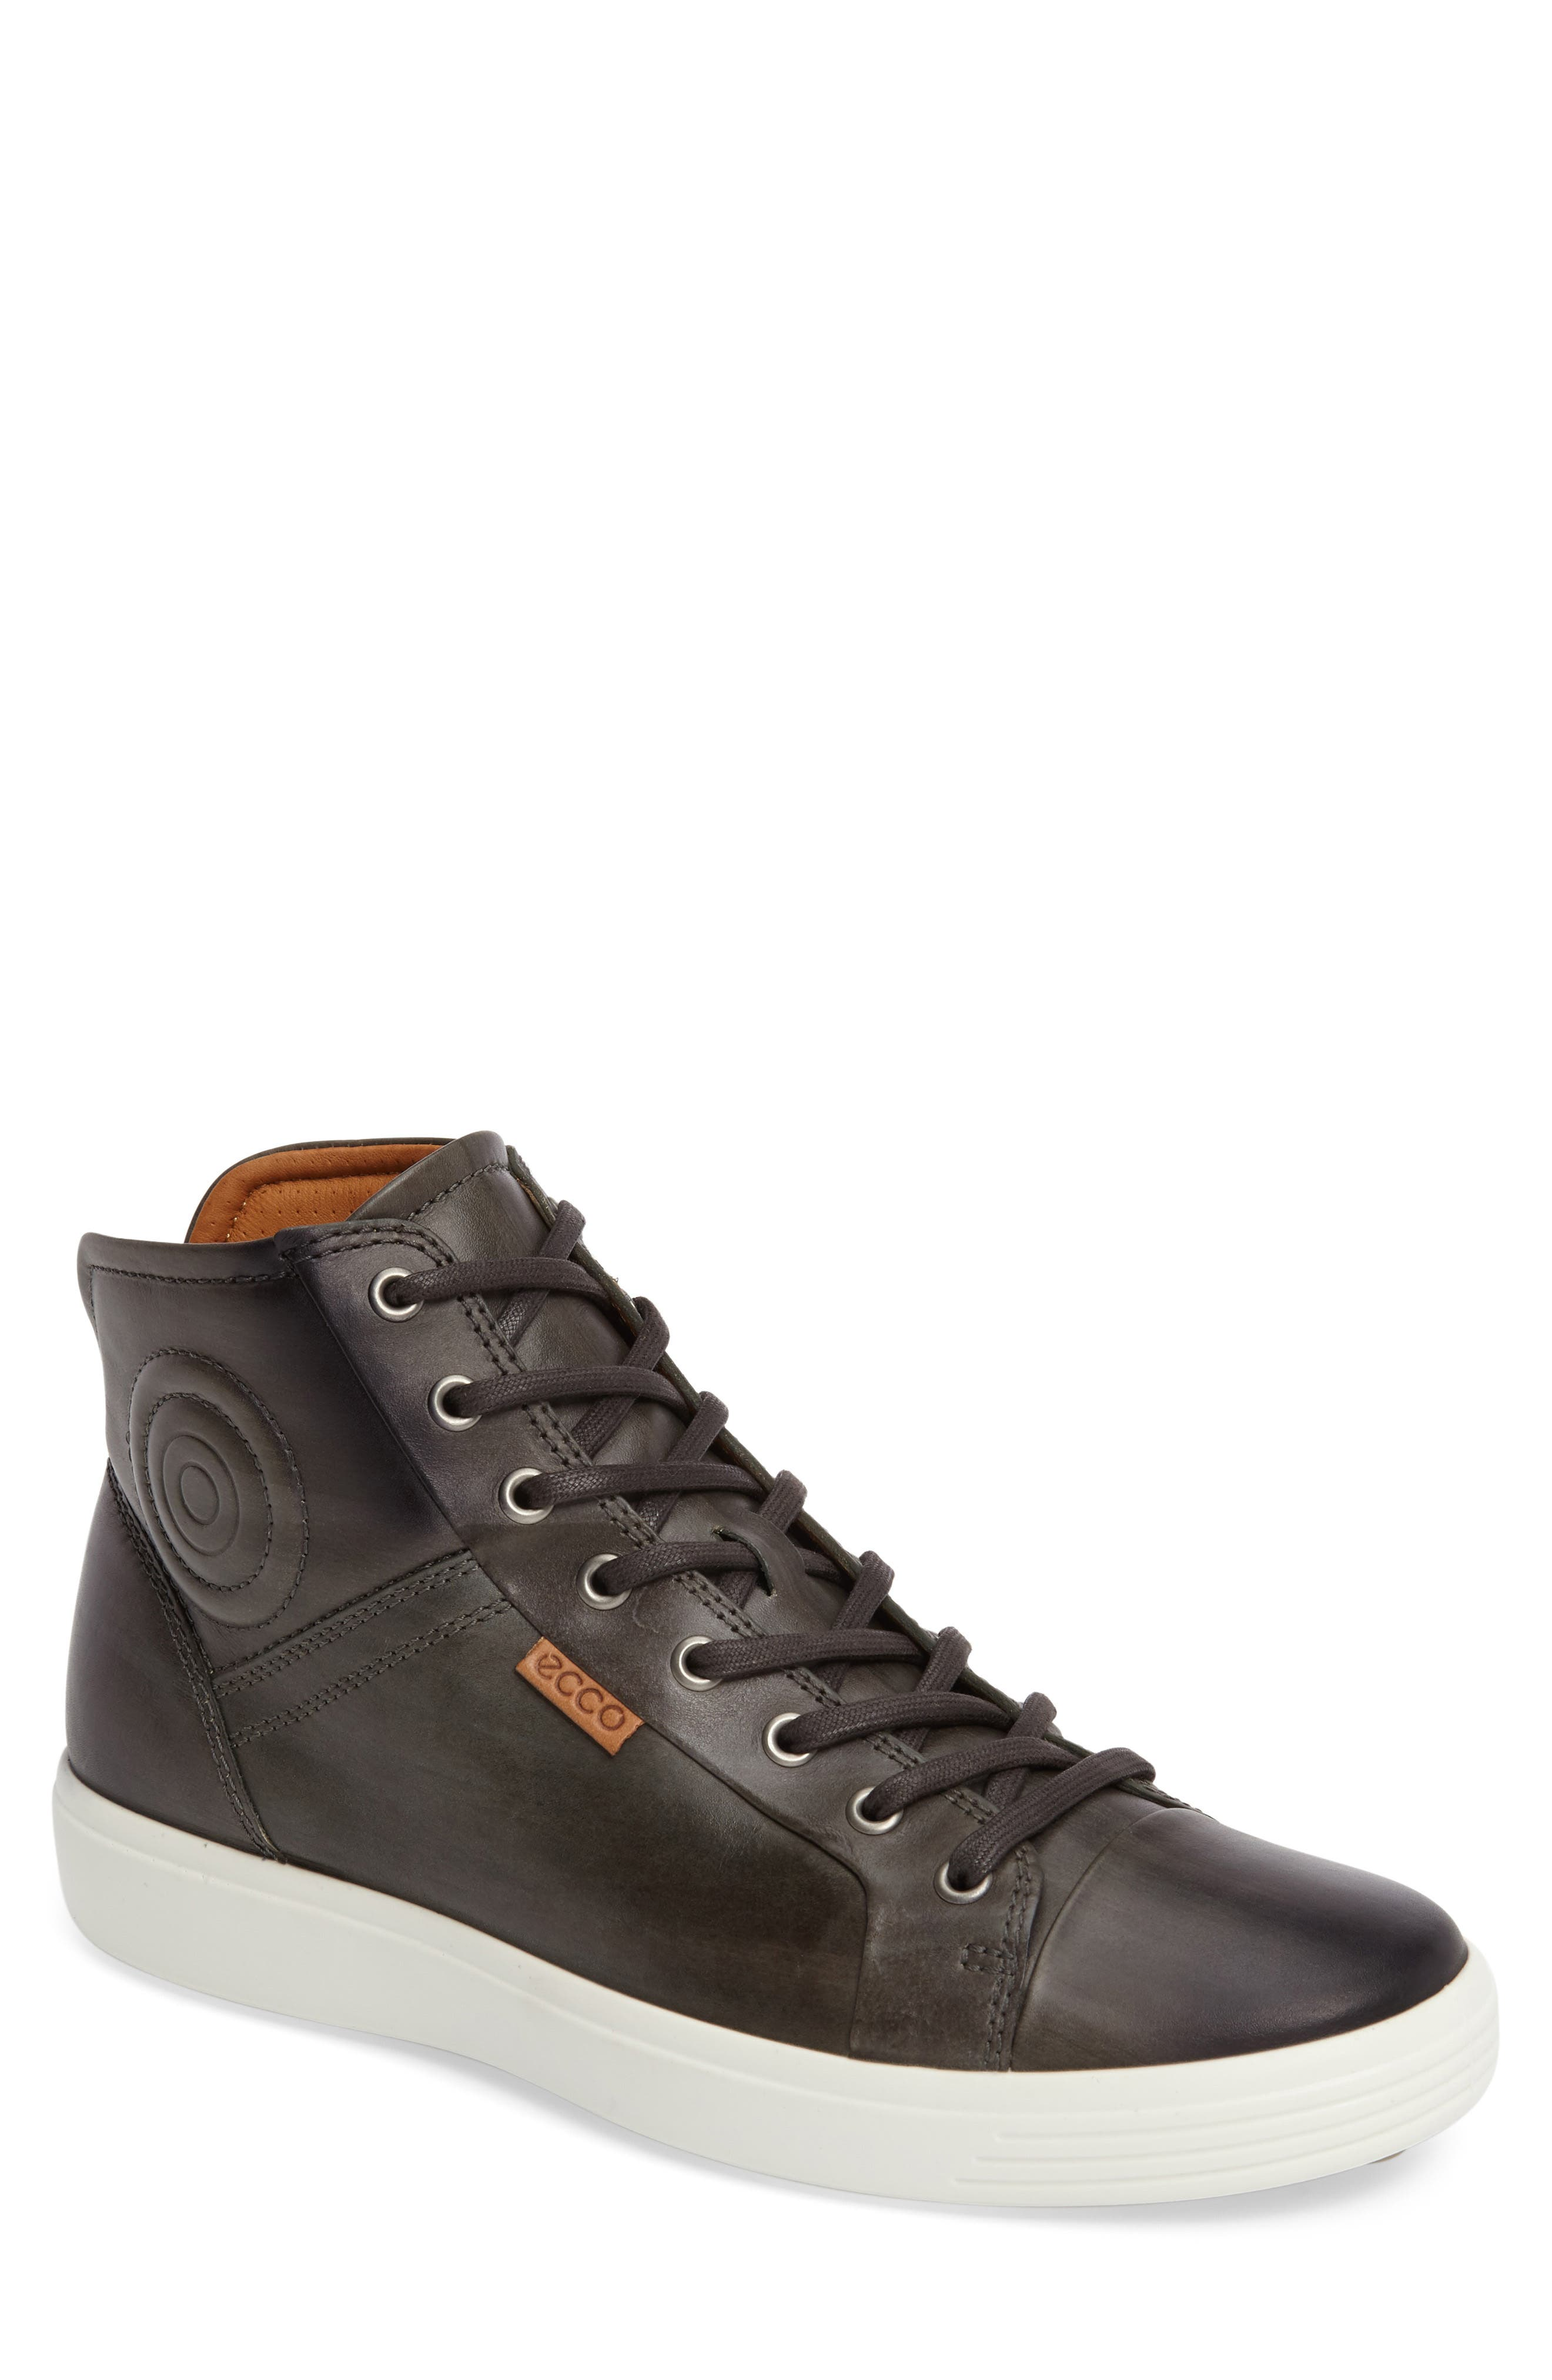 Soft 7 High Top Sneaker,                         Main,                         color, Forrest